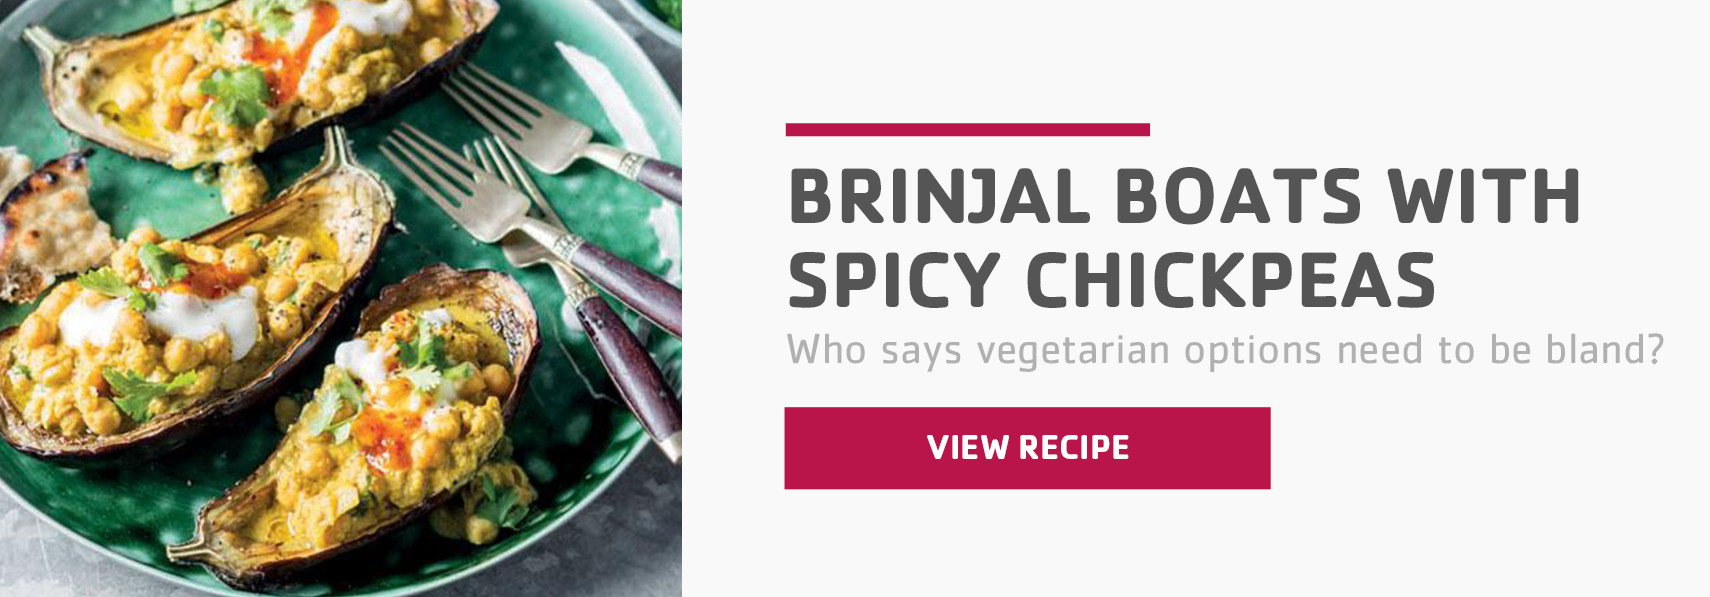 Brinjal boats with spicy chickpeas recipe listing page banner.jpg